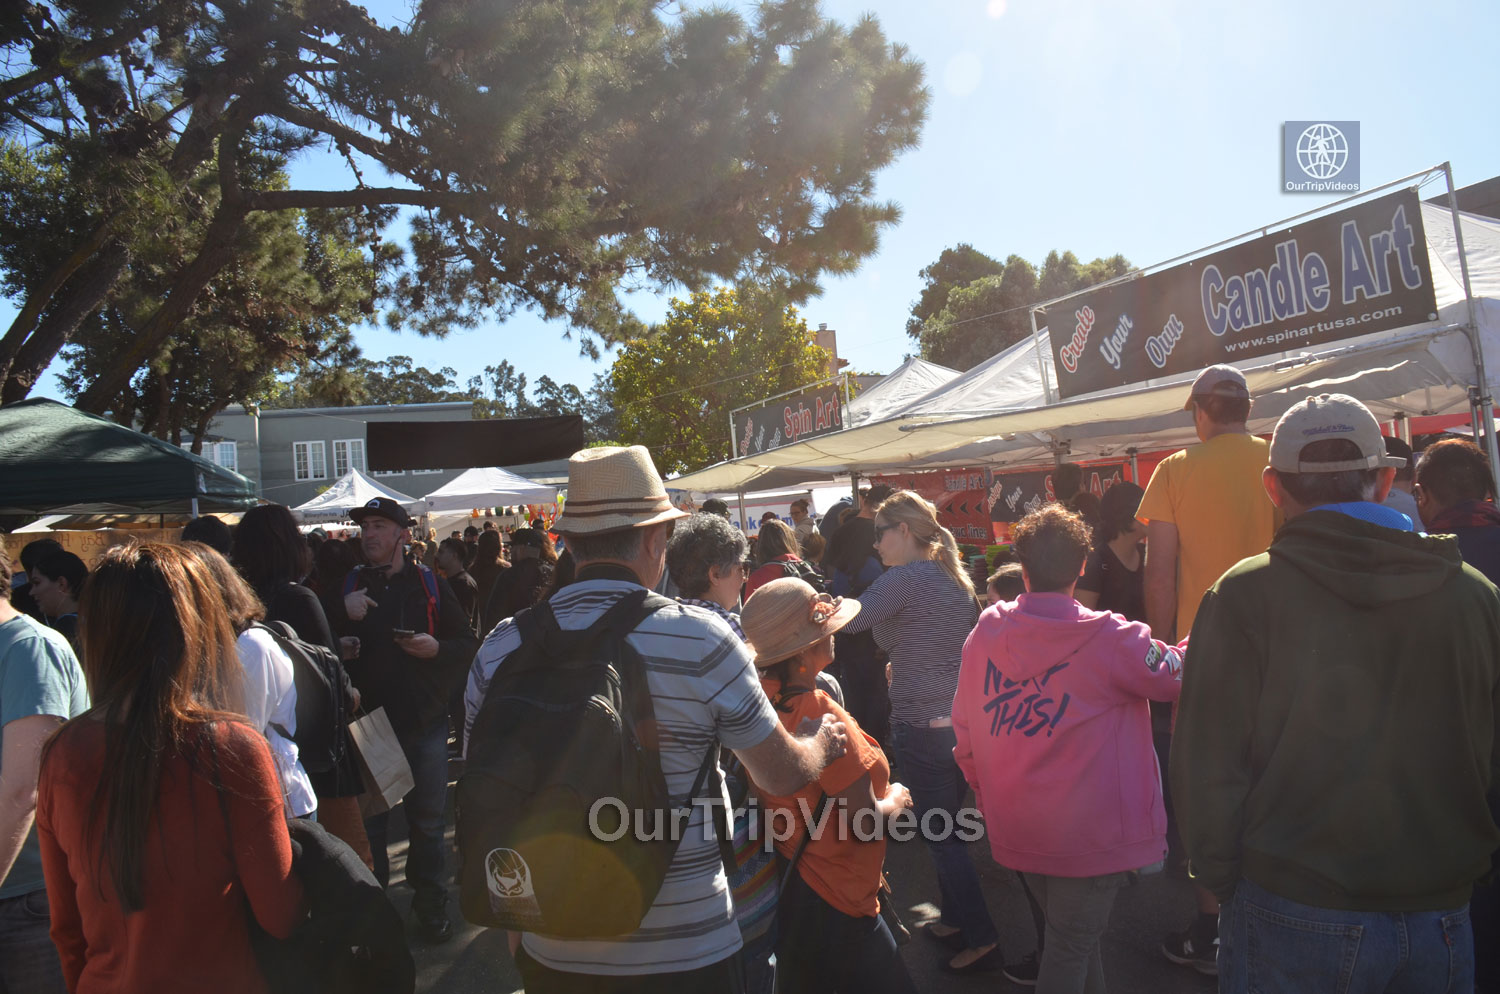 Art and Pumpkin Festival(Parade), Half Moon Bay, CA, USA - Picture 21 of 25